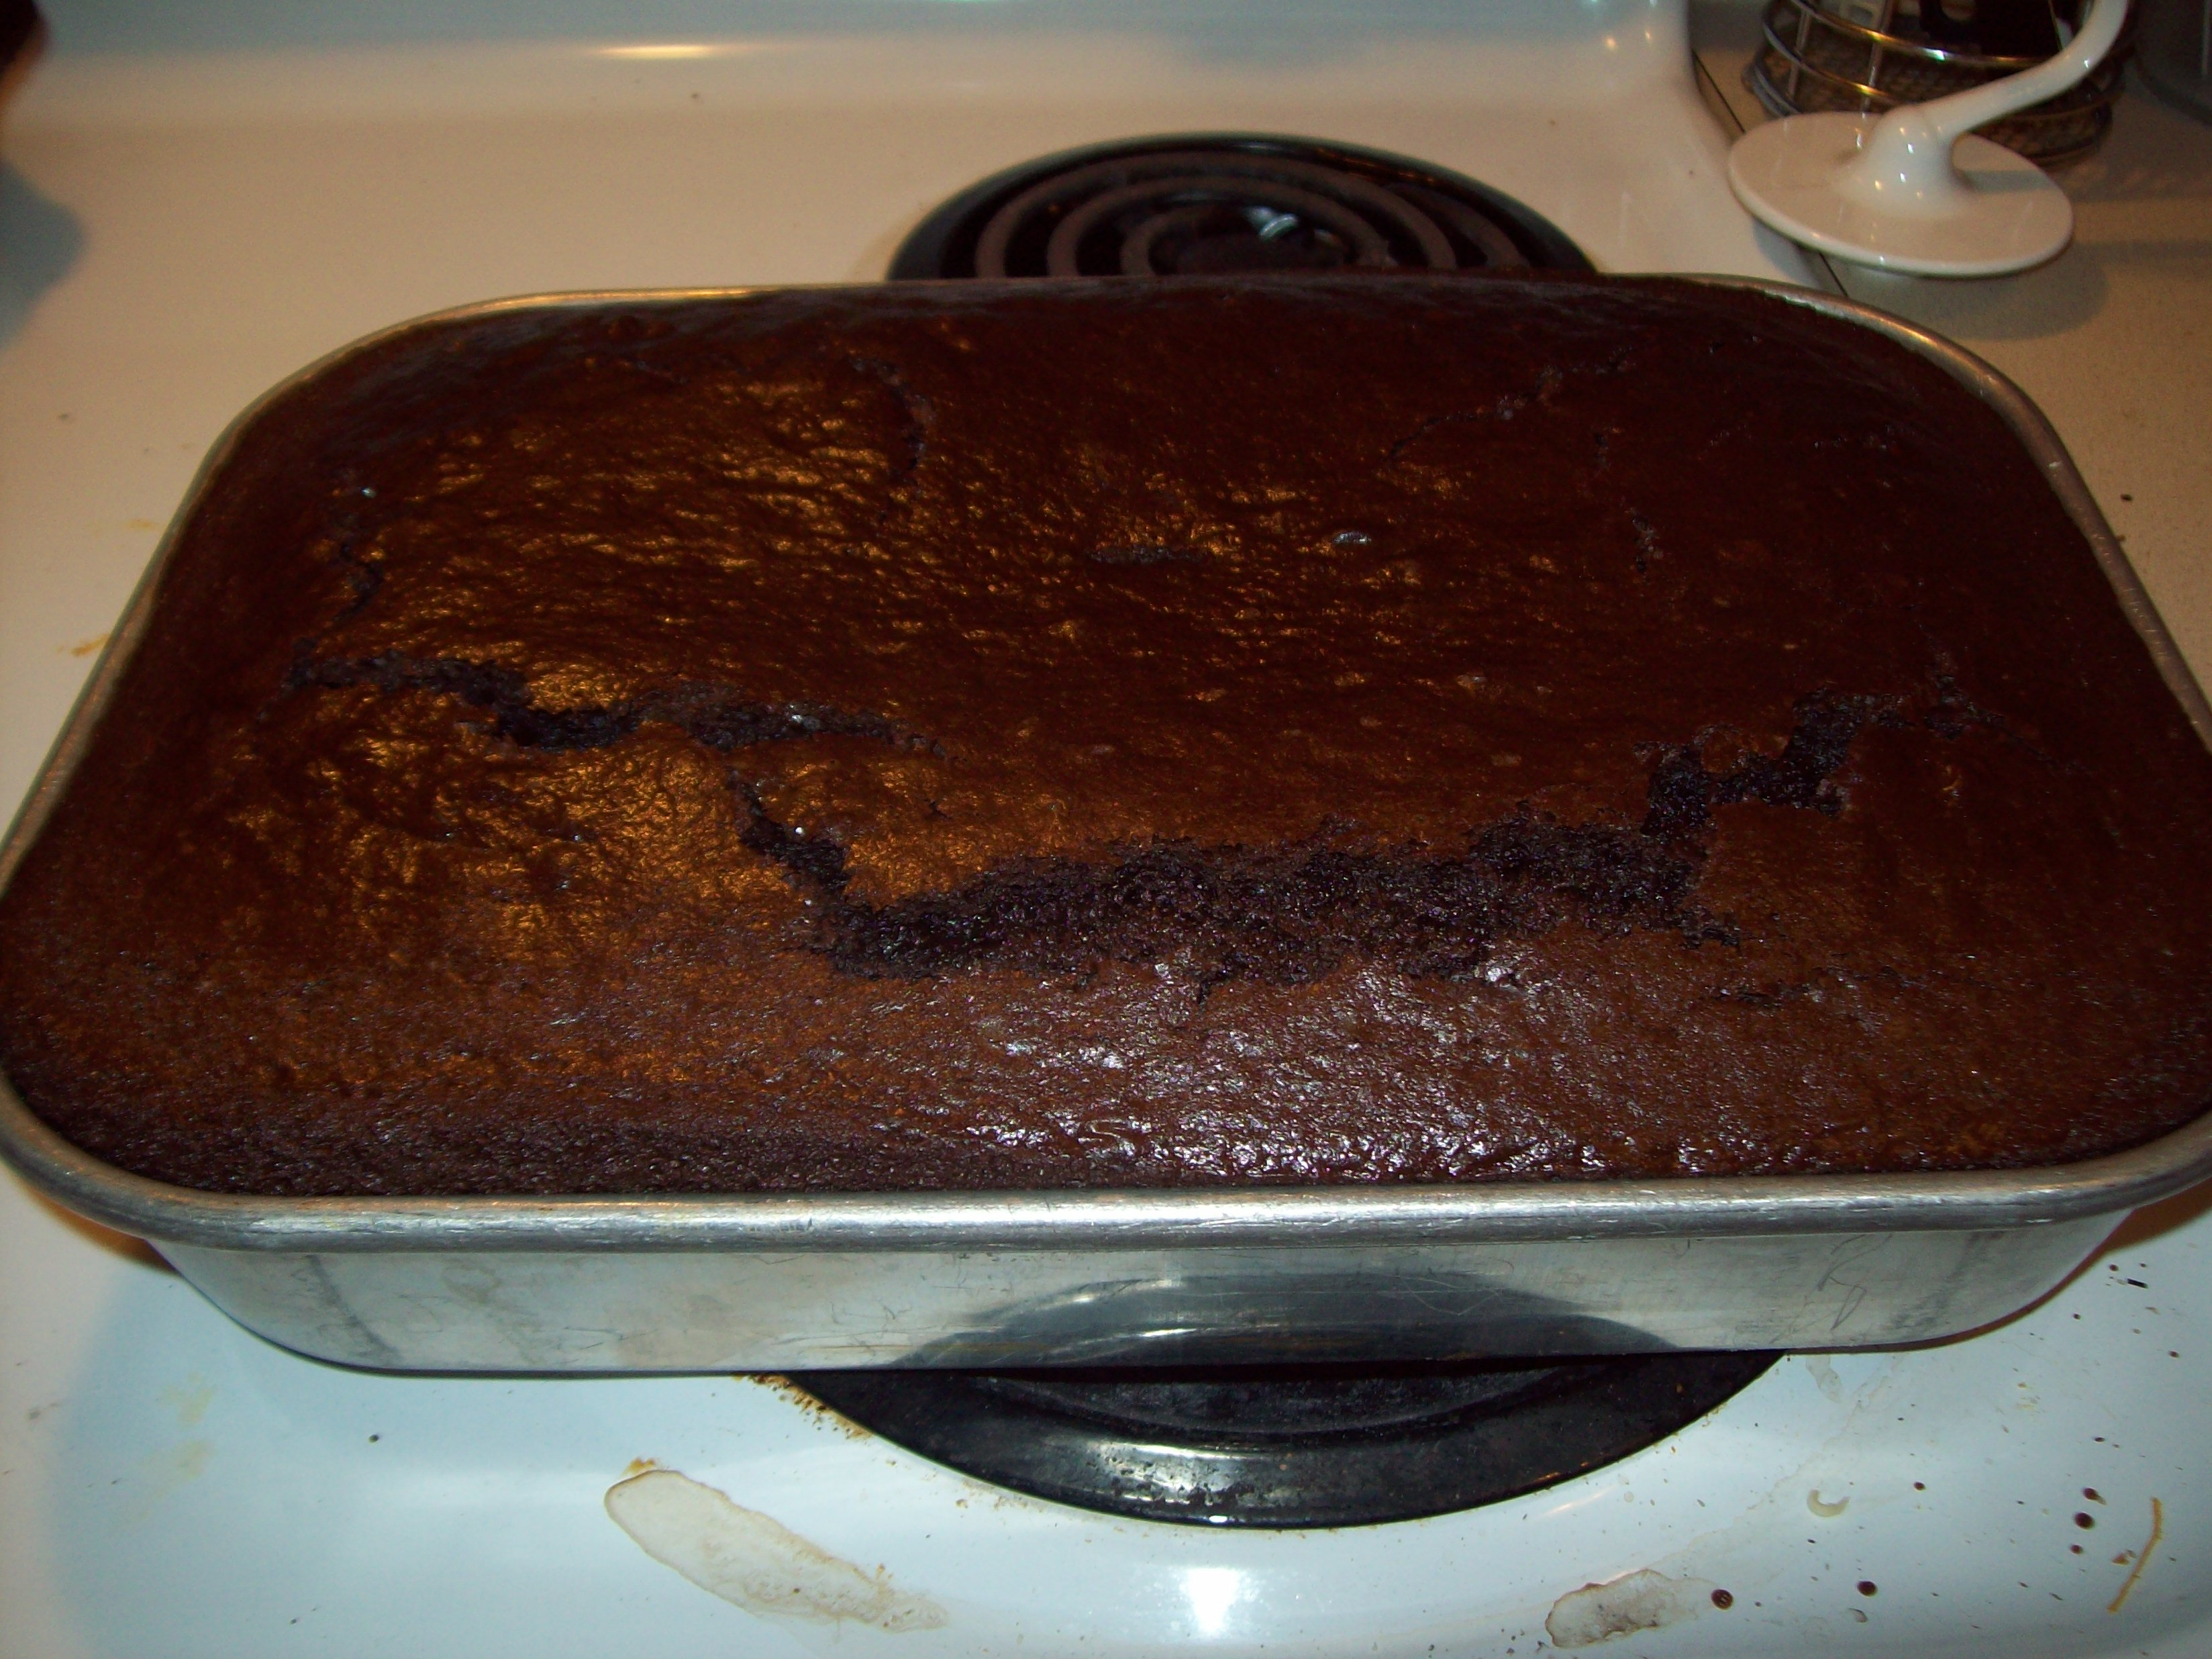 My Cake Fresh Out Of The Oven